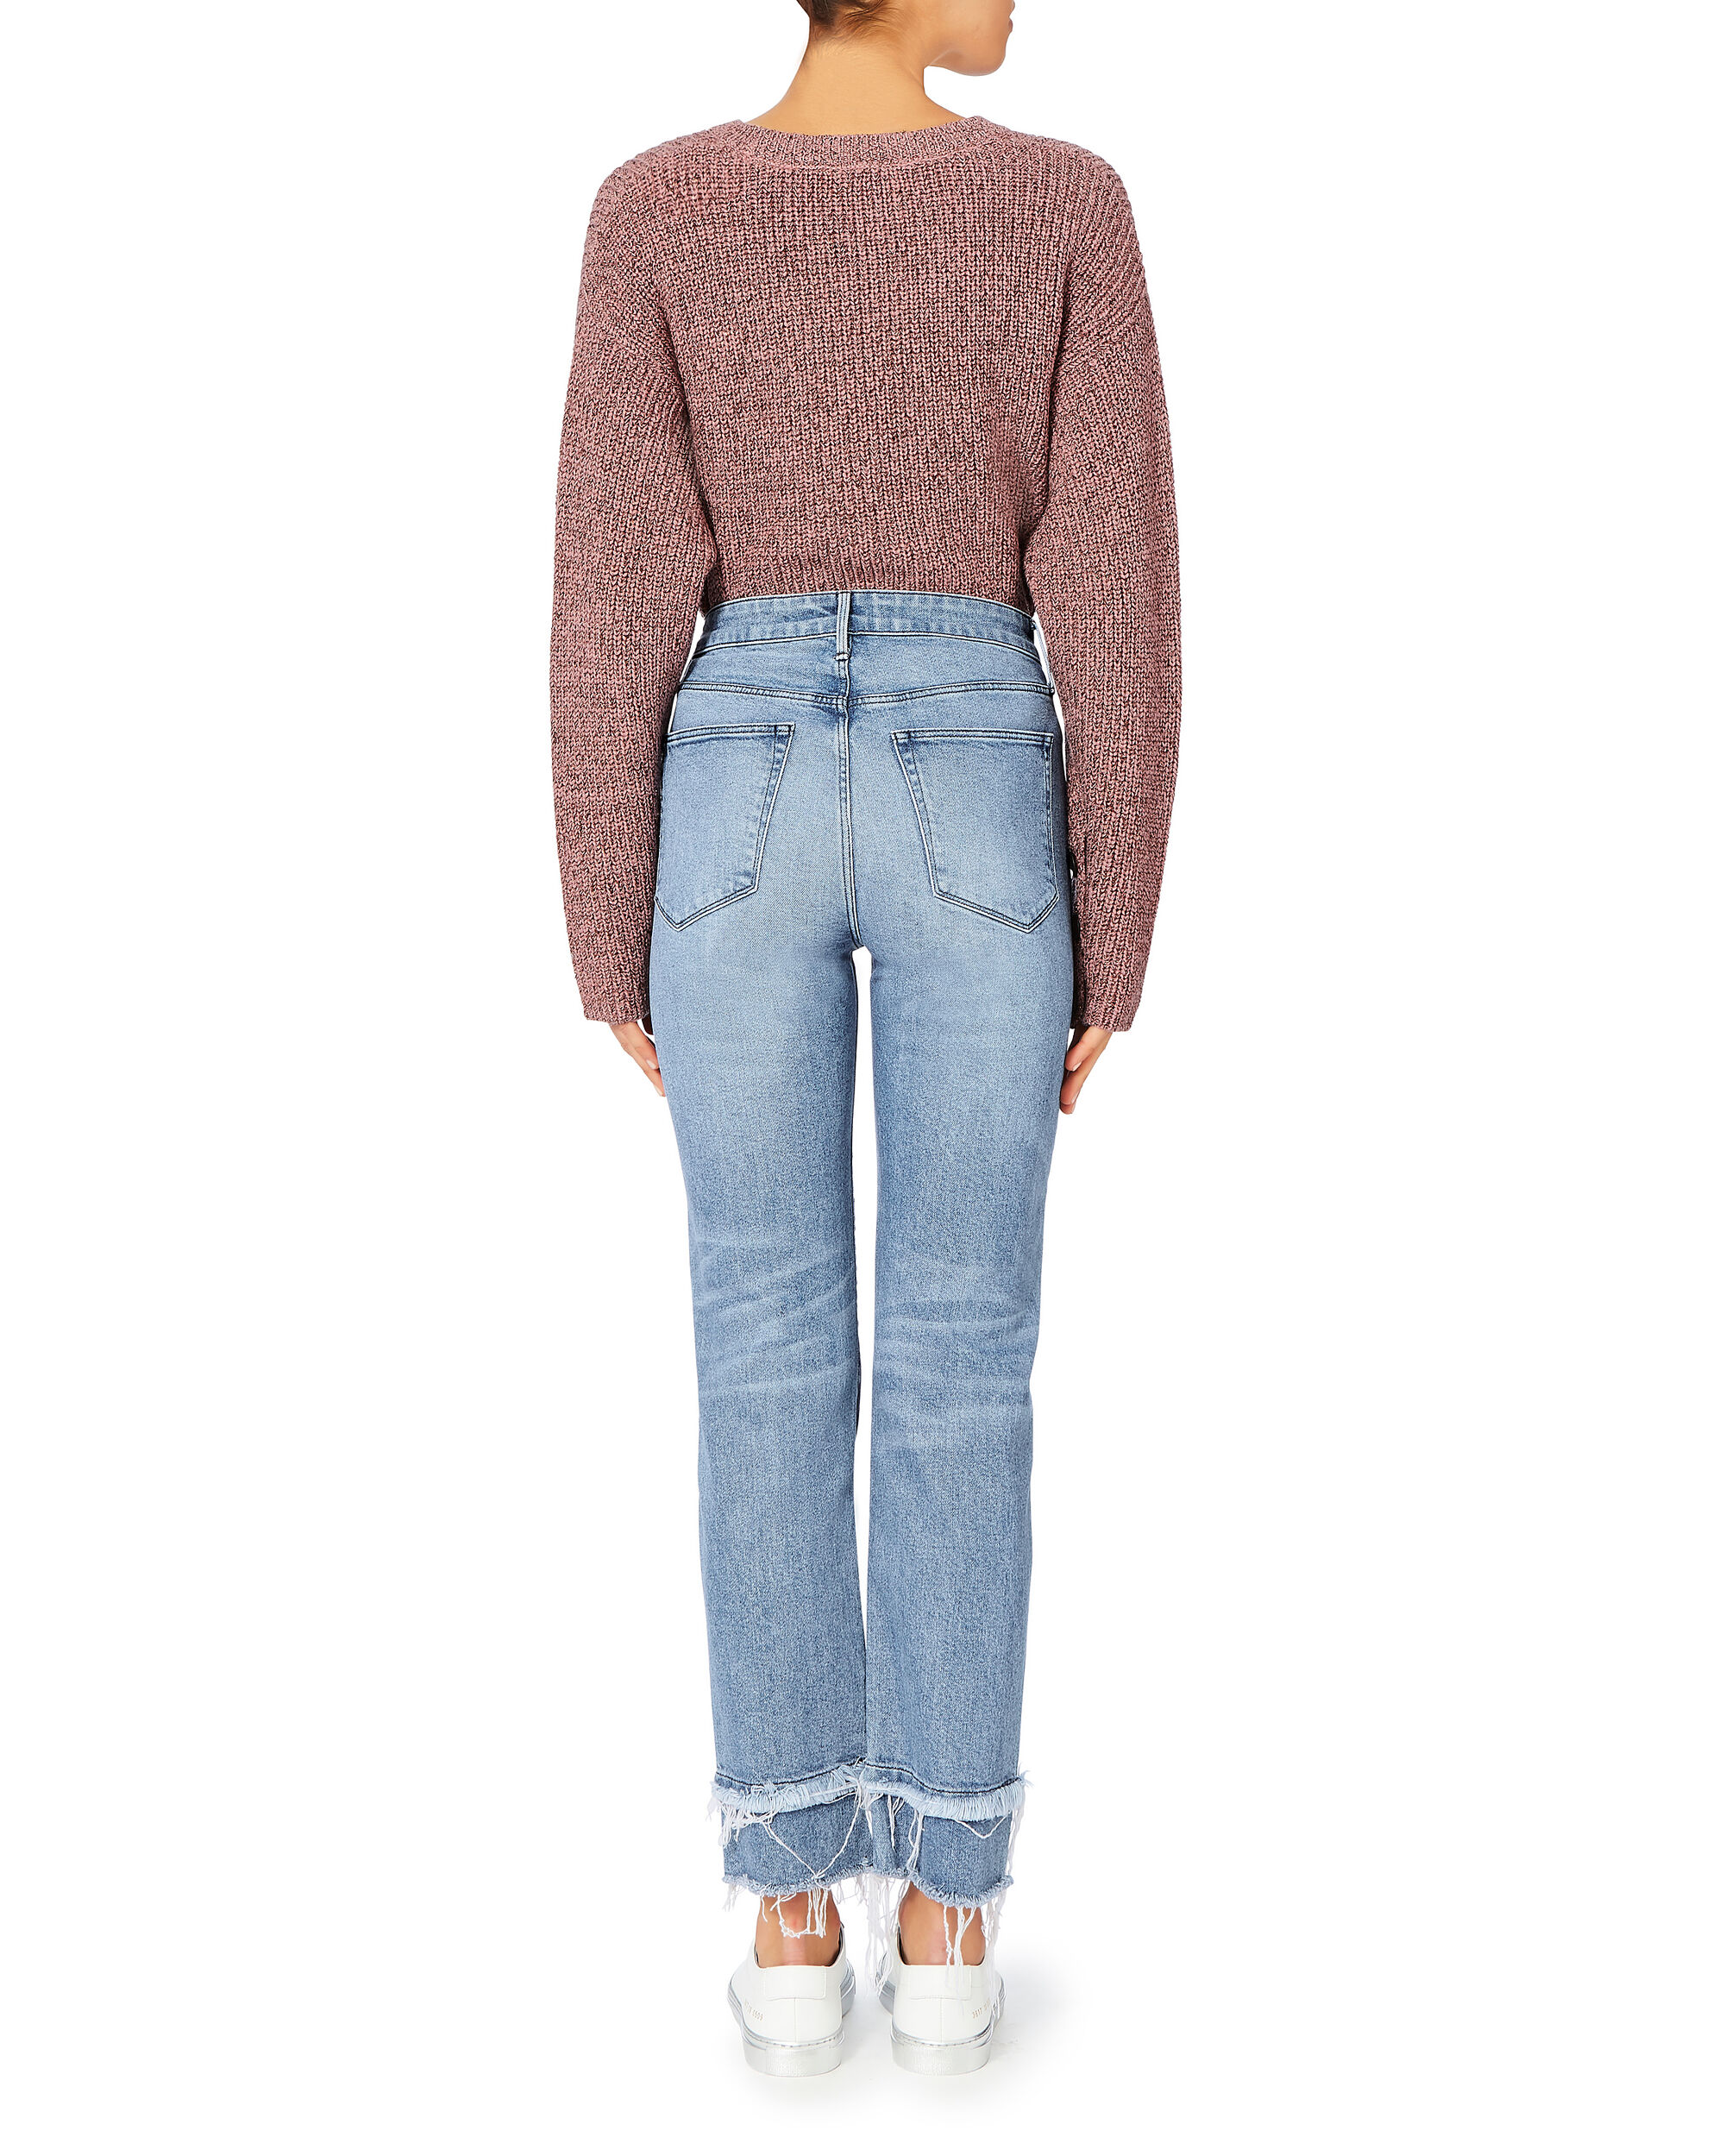 Petal Higher Ground Slim Cropped Jeans, DENIM, hi-res